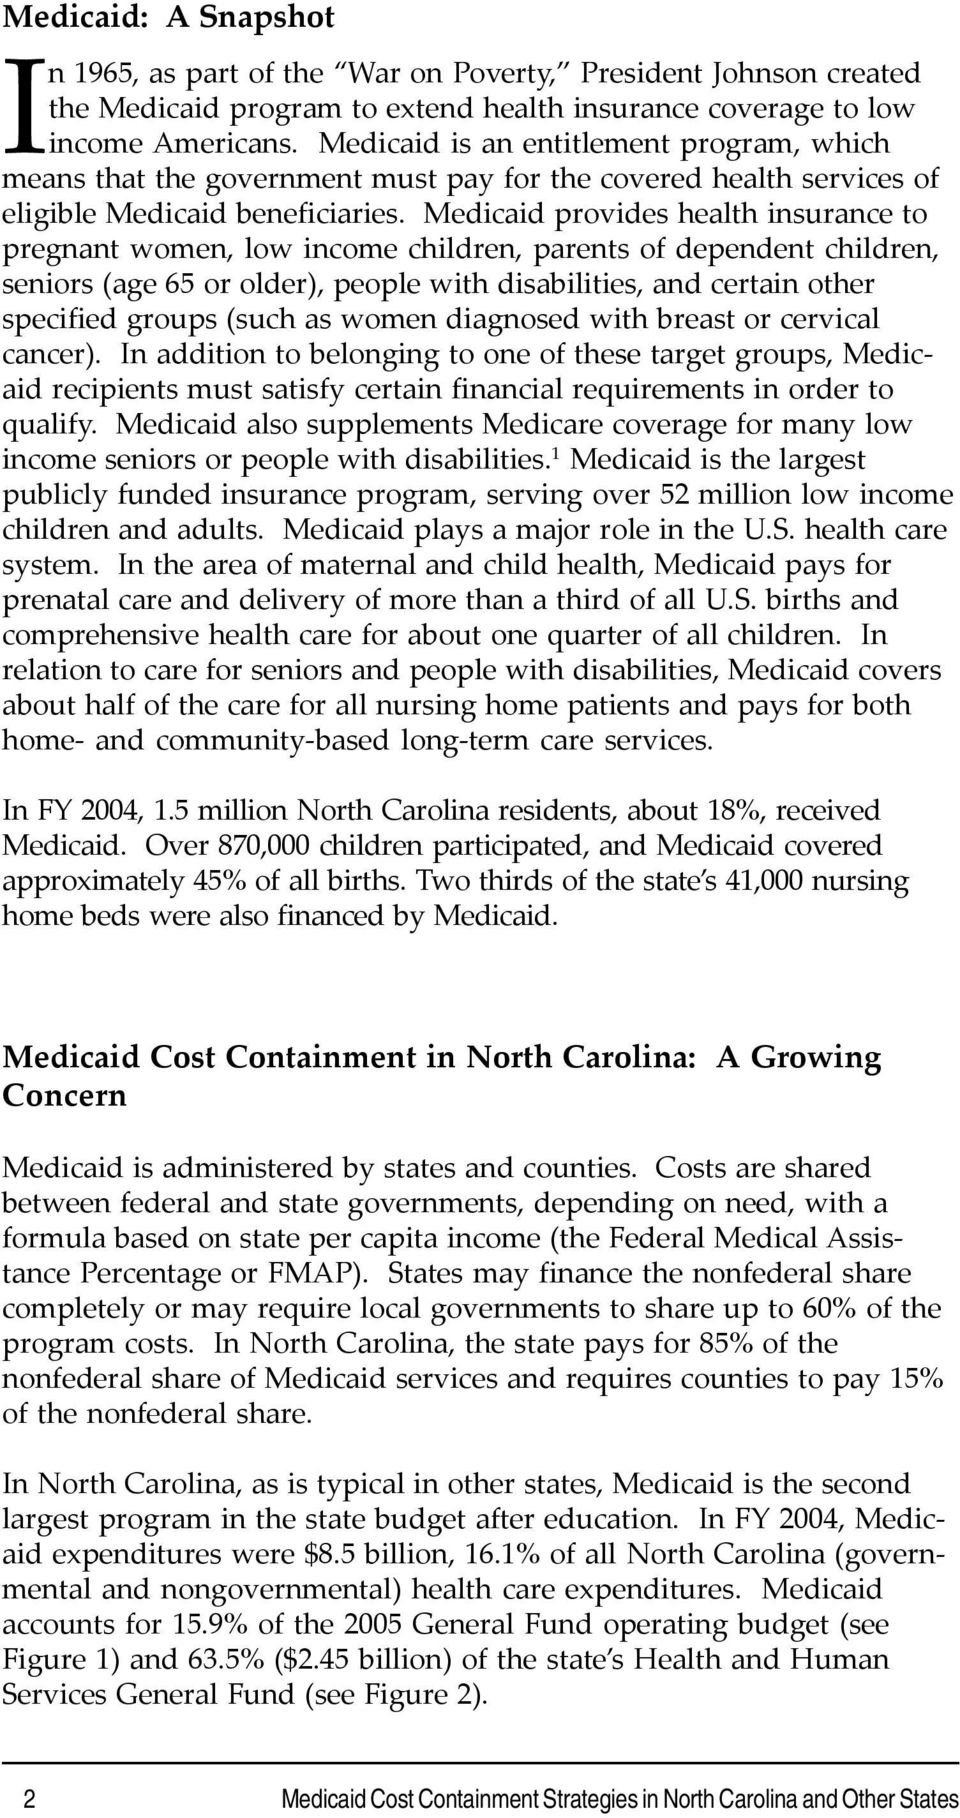 Medicaid provides health insurance to pregnant women, low income children, parents of dependent children, seniors (age 65 or older), people with disabilities, and certain other specified groups (such